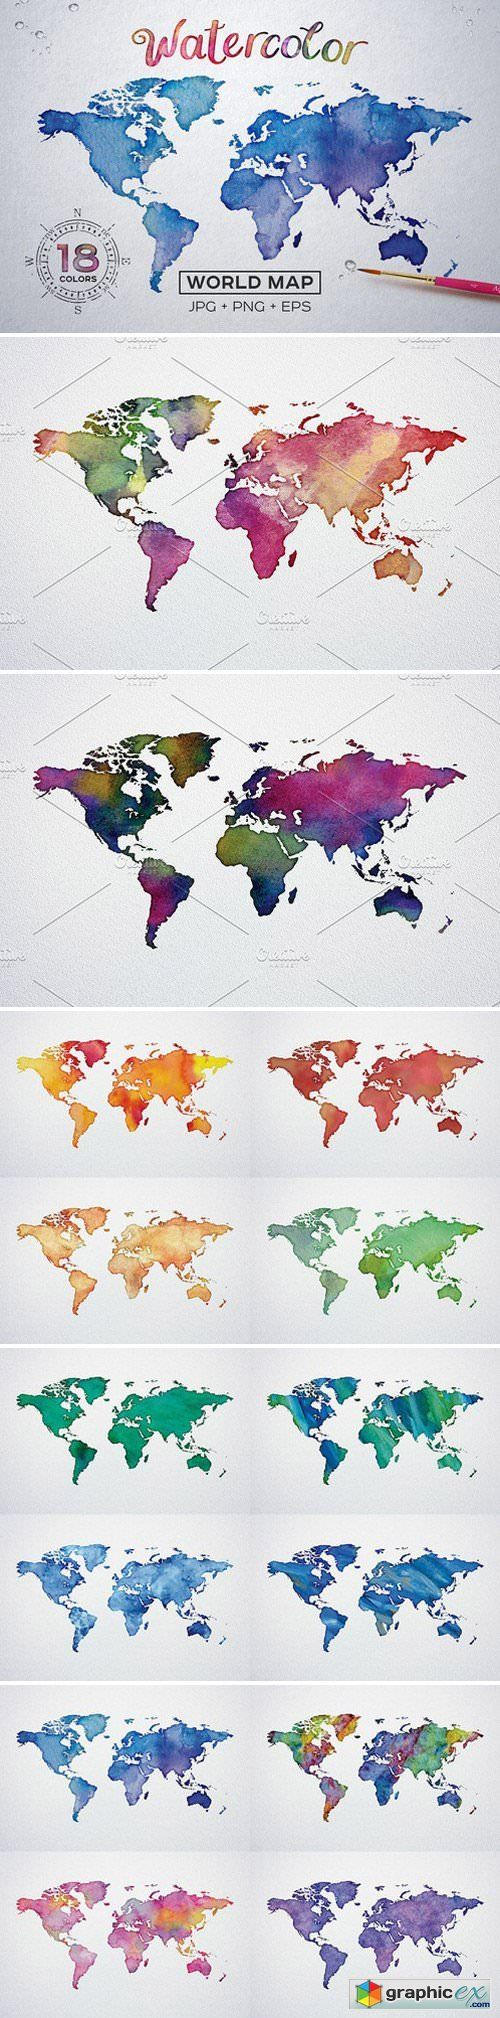 Watercolor world maps jpgepspng stock images web graphics theme watercolor world maps jpgepspng stock images gumiabroncs Choice Image